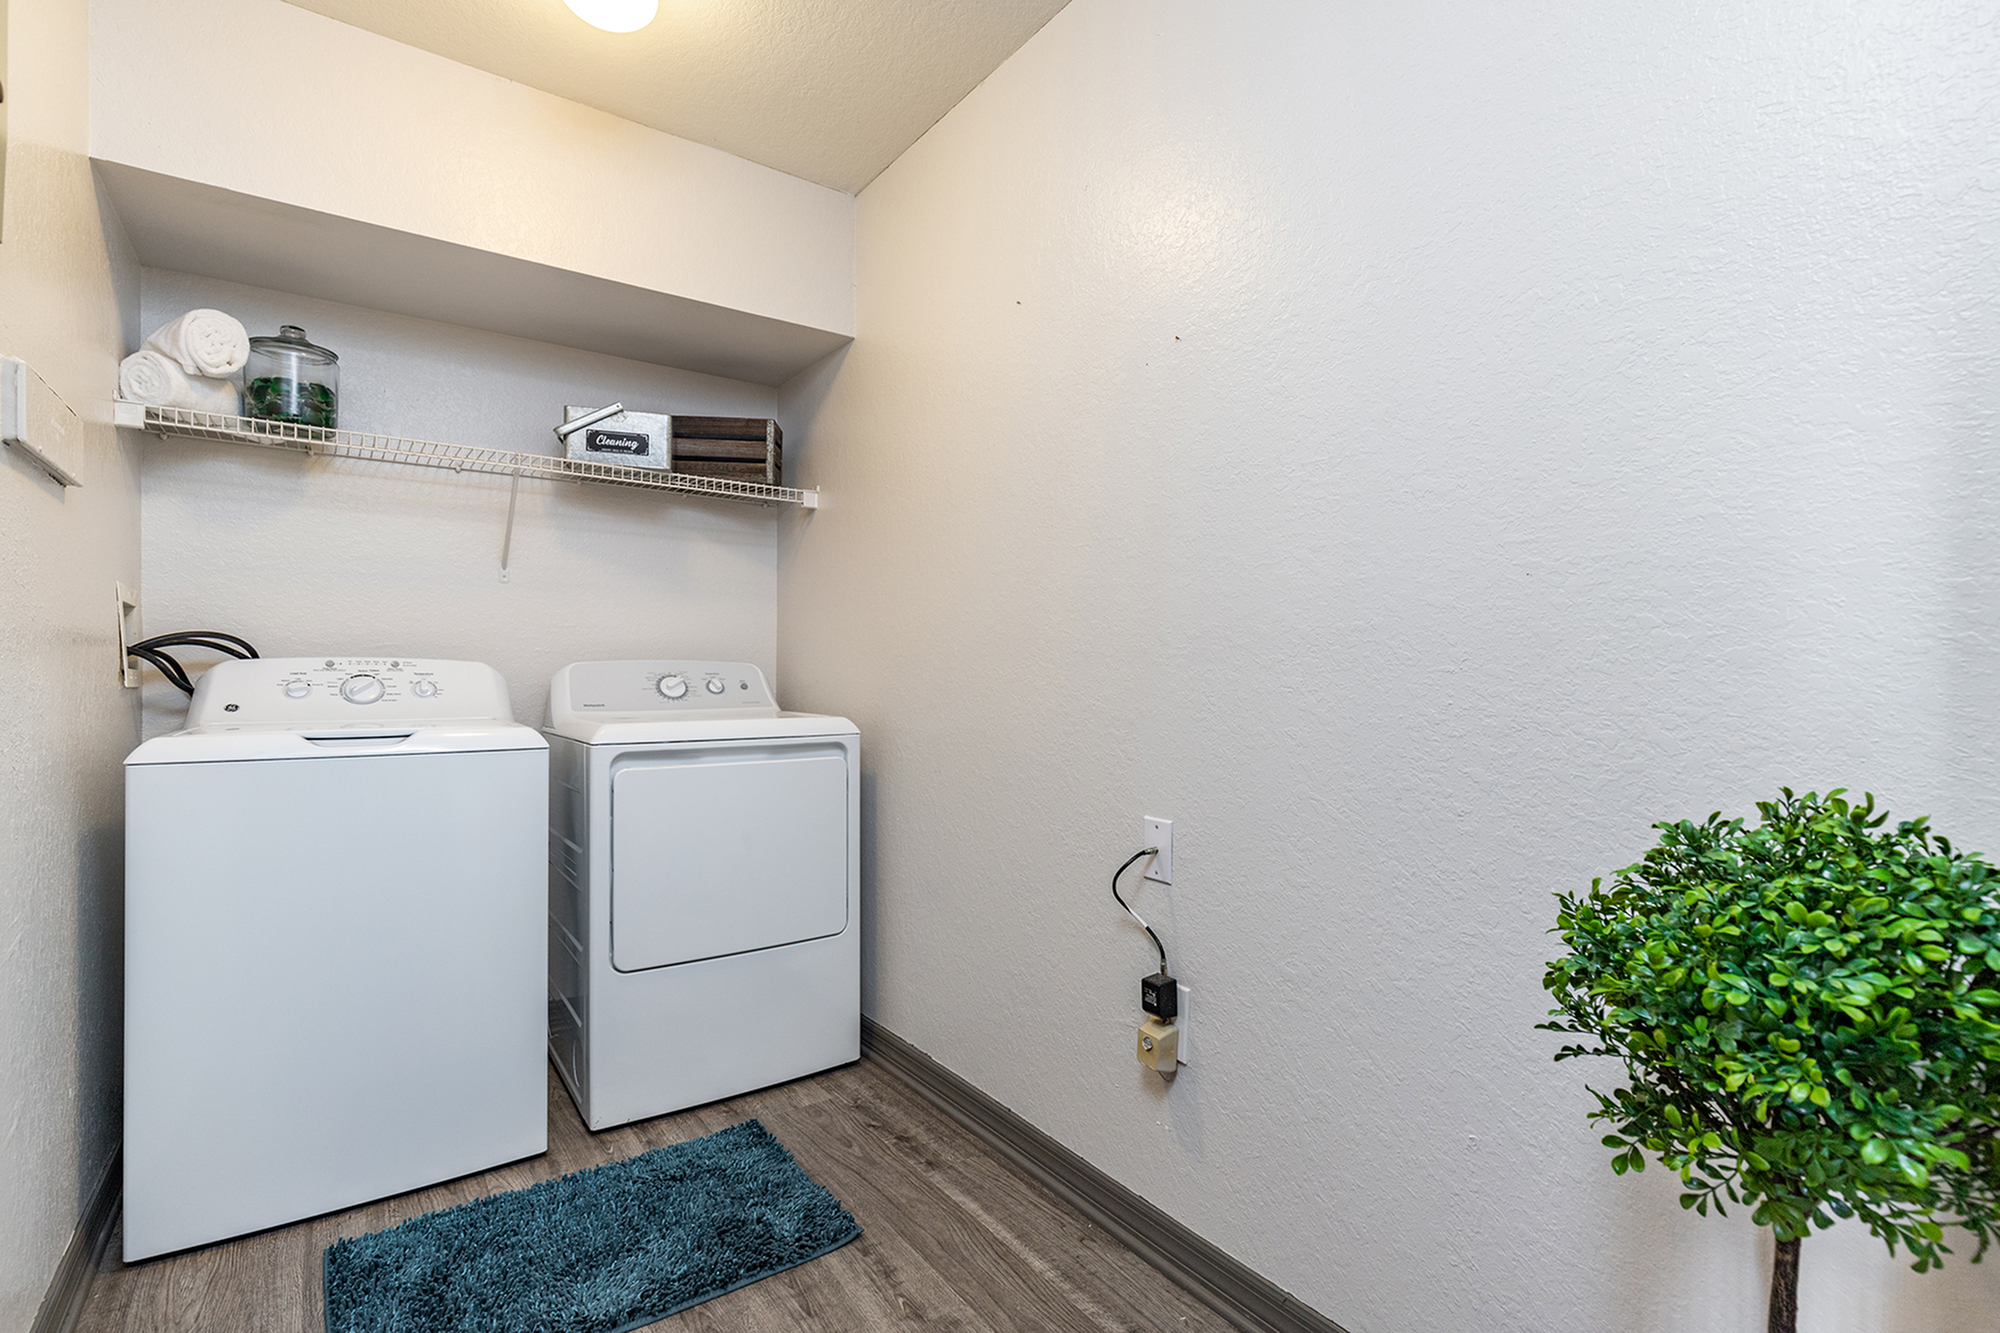 In-home Laundry    Apartment Homes for rent in Tampa, FL   Station 42